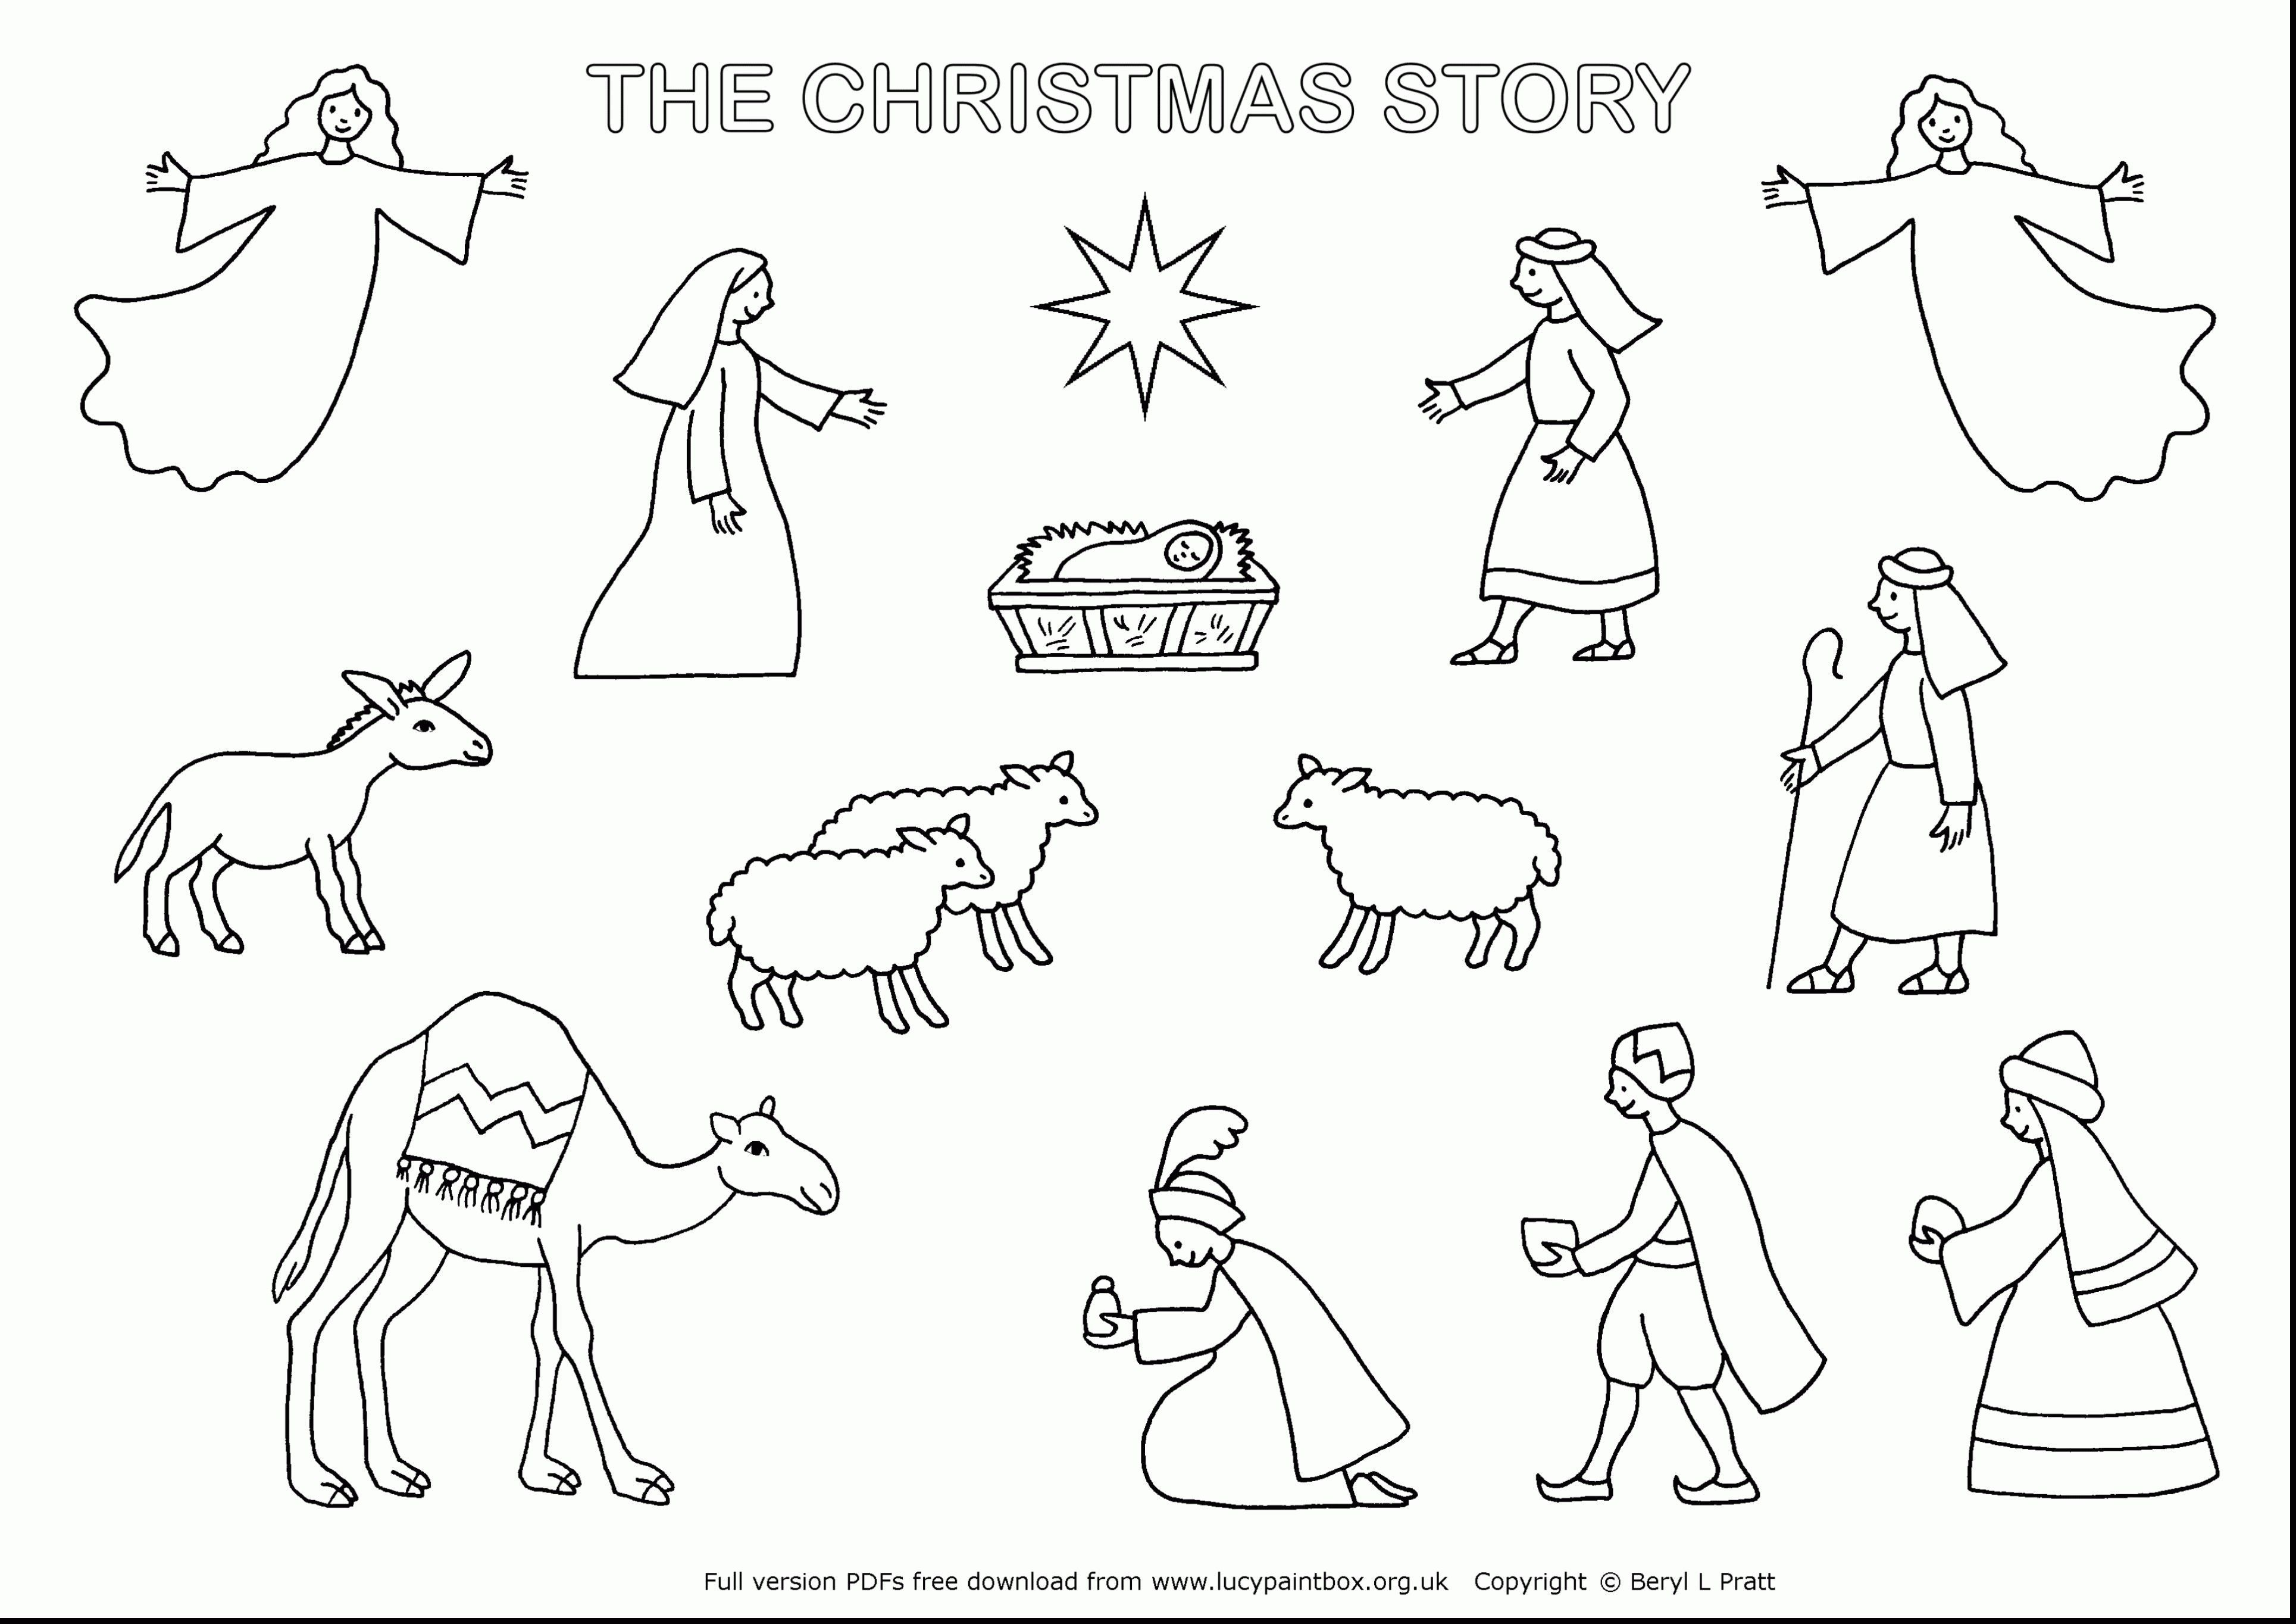 Free Printable Catholic Christmas Coloring Pages With For Children That You Chr Jesus Coloring Pages Catholic Christmas Coloring Coloring Pages Inspirational